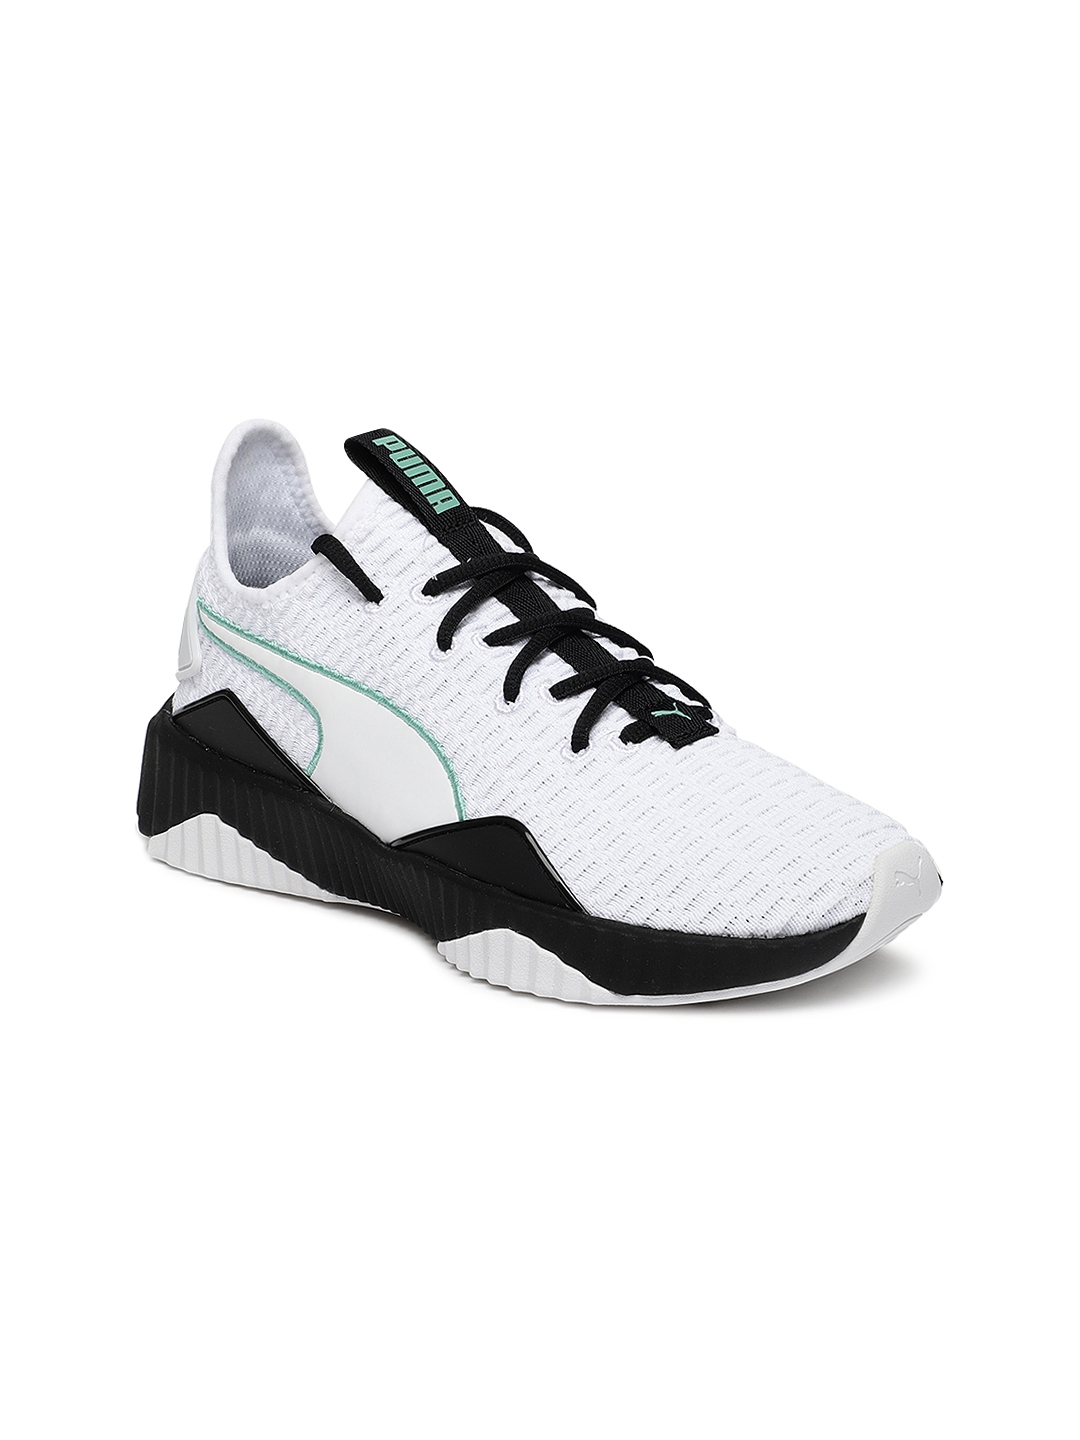 Buy Puma Women White Defy Training Shoes - Sports Shoes for Women ... 1816d582155